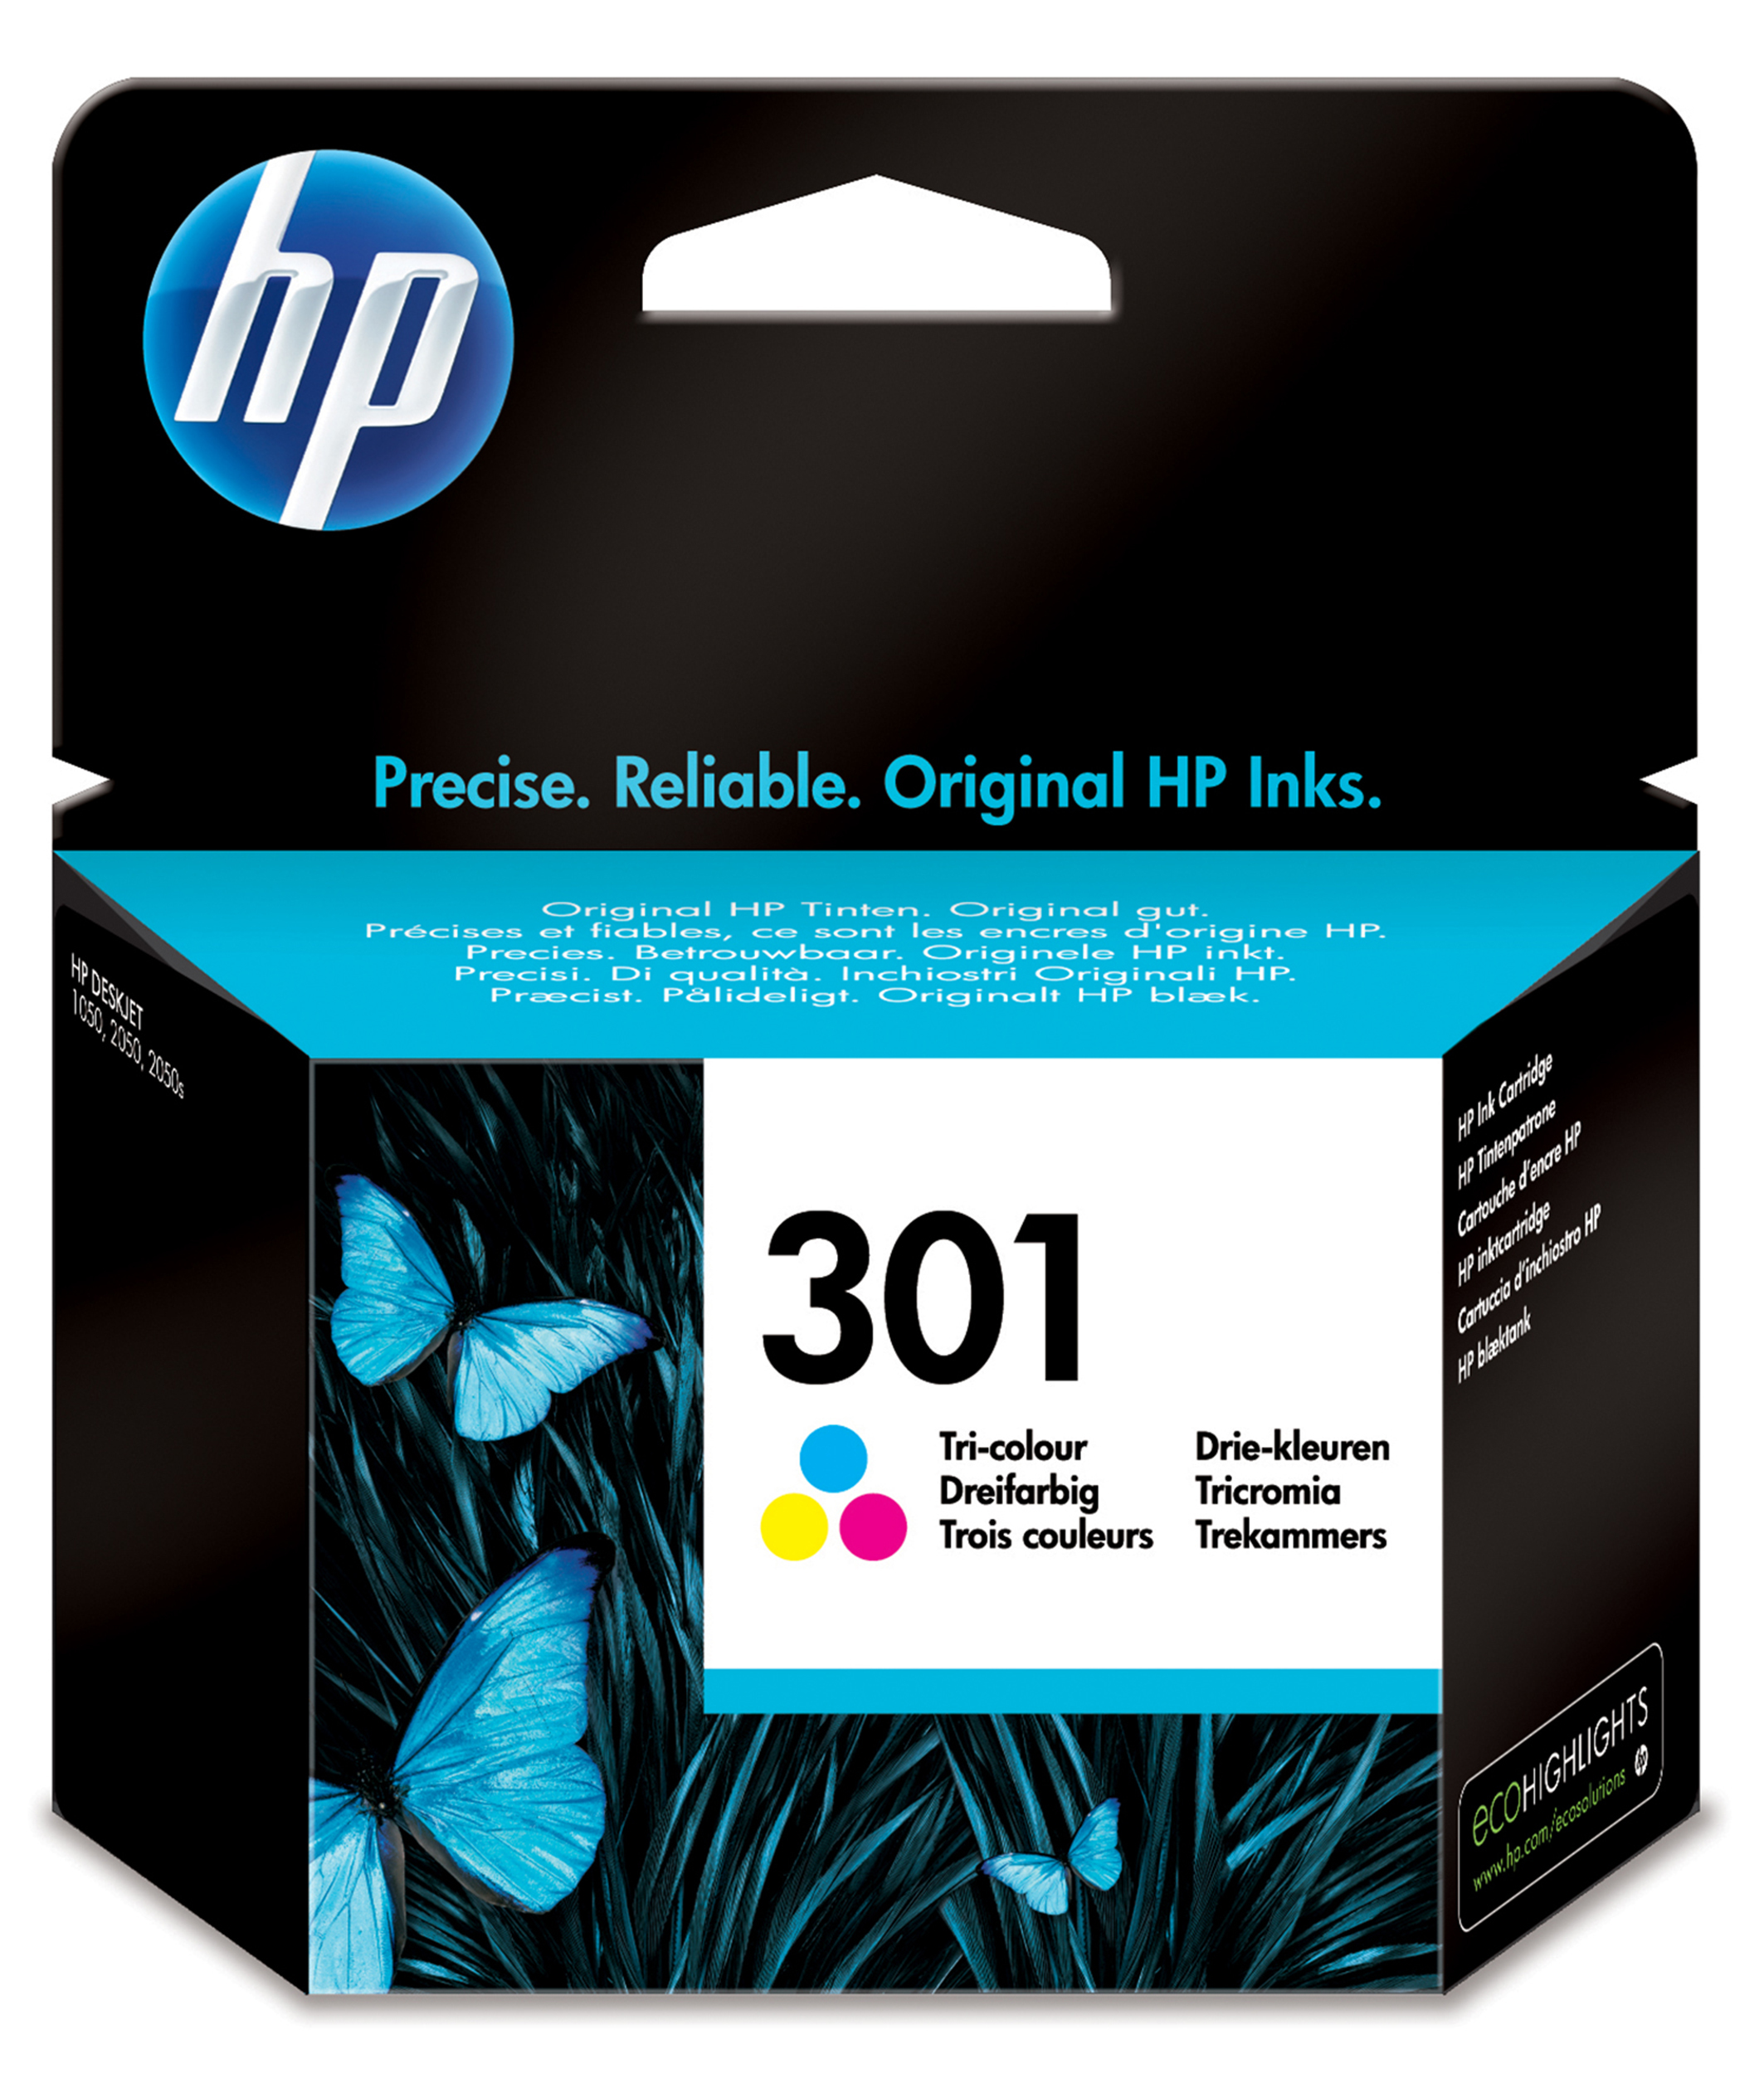 BB Reman HP CH562EE (301) Colour Cart 165 pages CH562EE - rem01